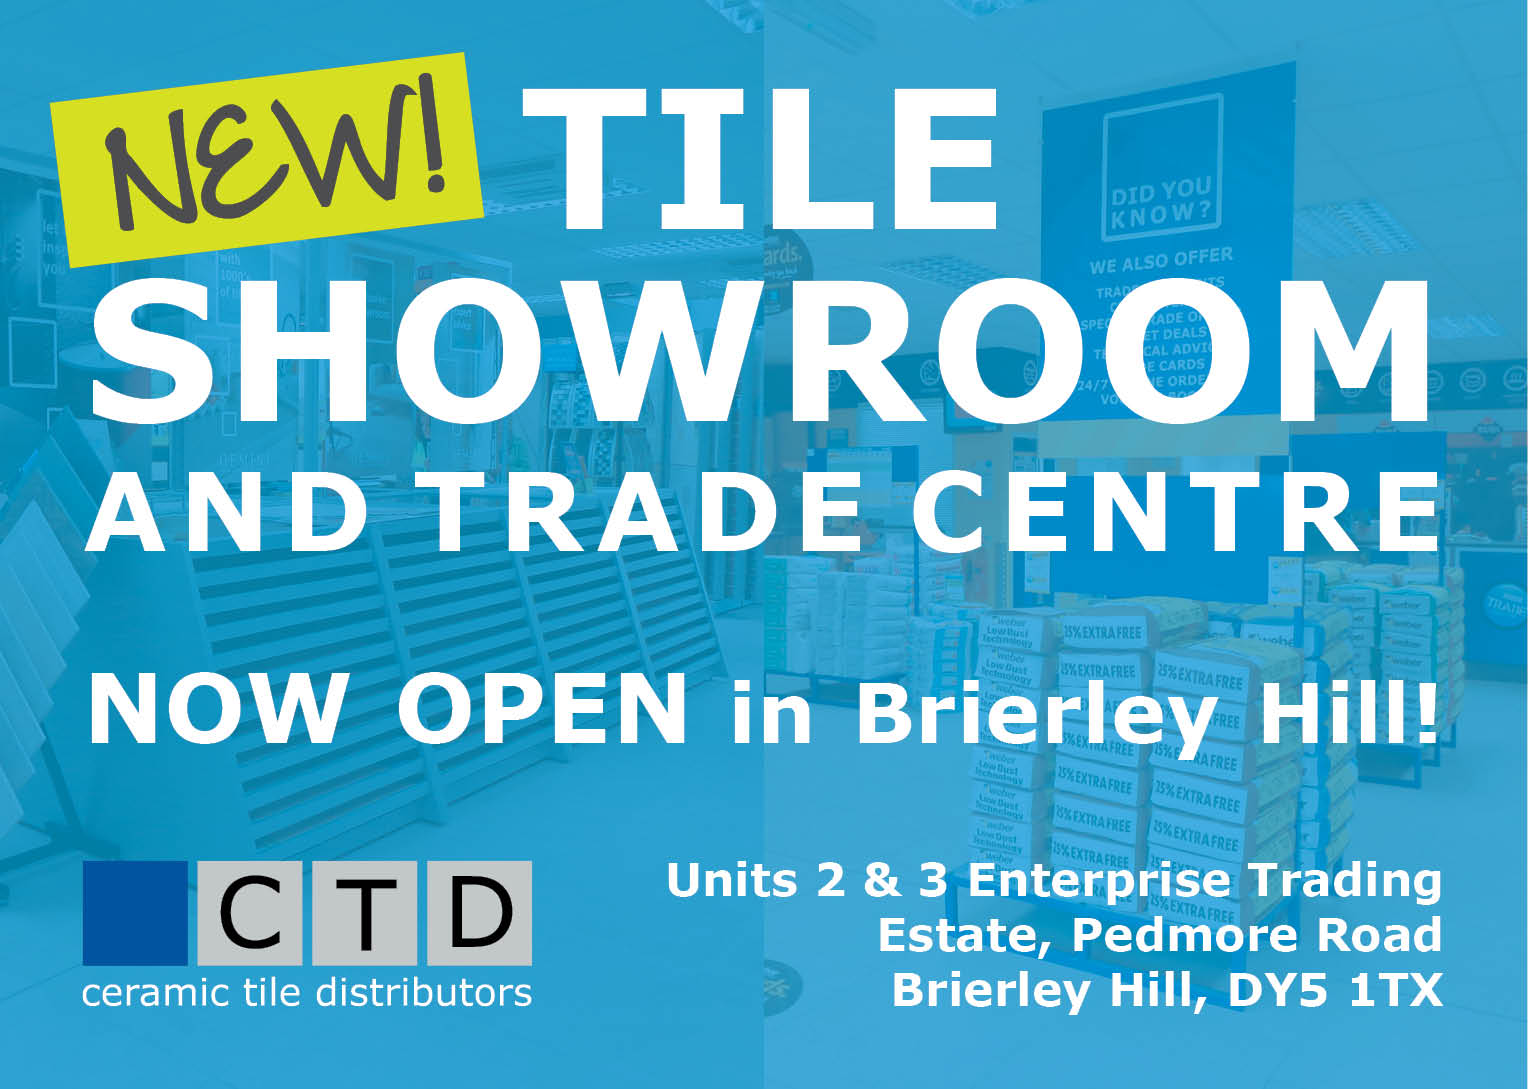 Tiles brierley hill tile shop trade centre ctd tiles ctd tile showroom brierley hill now open dailygadgetfo Image collections